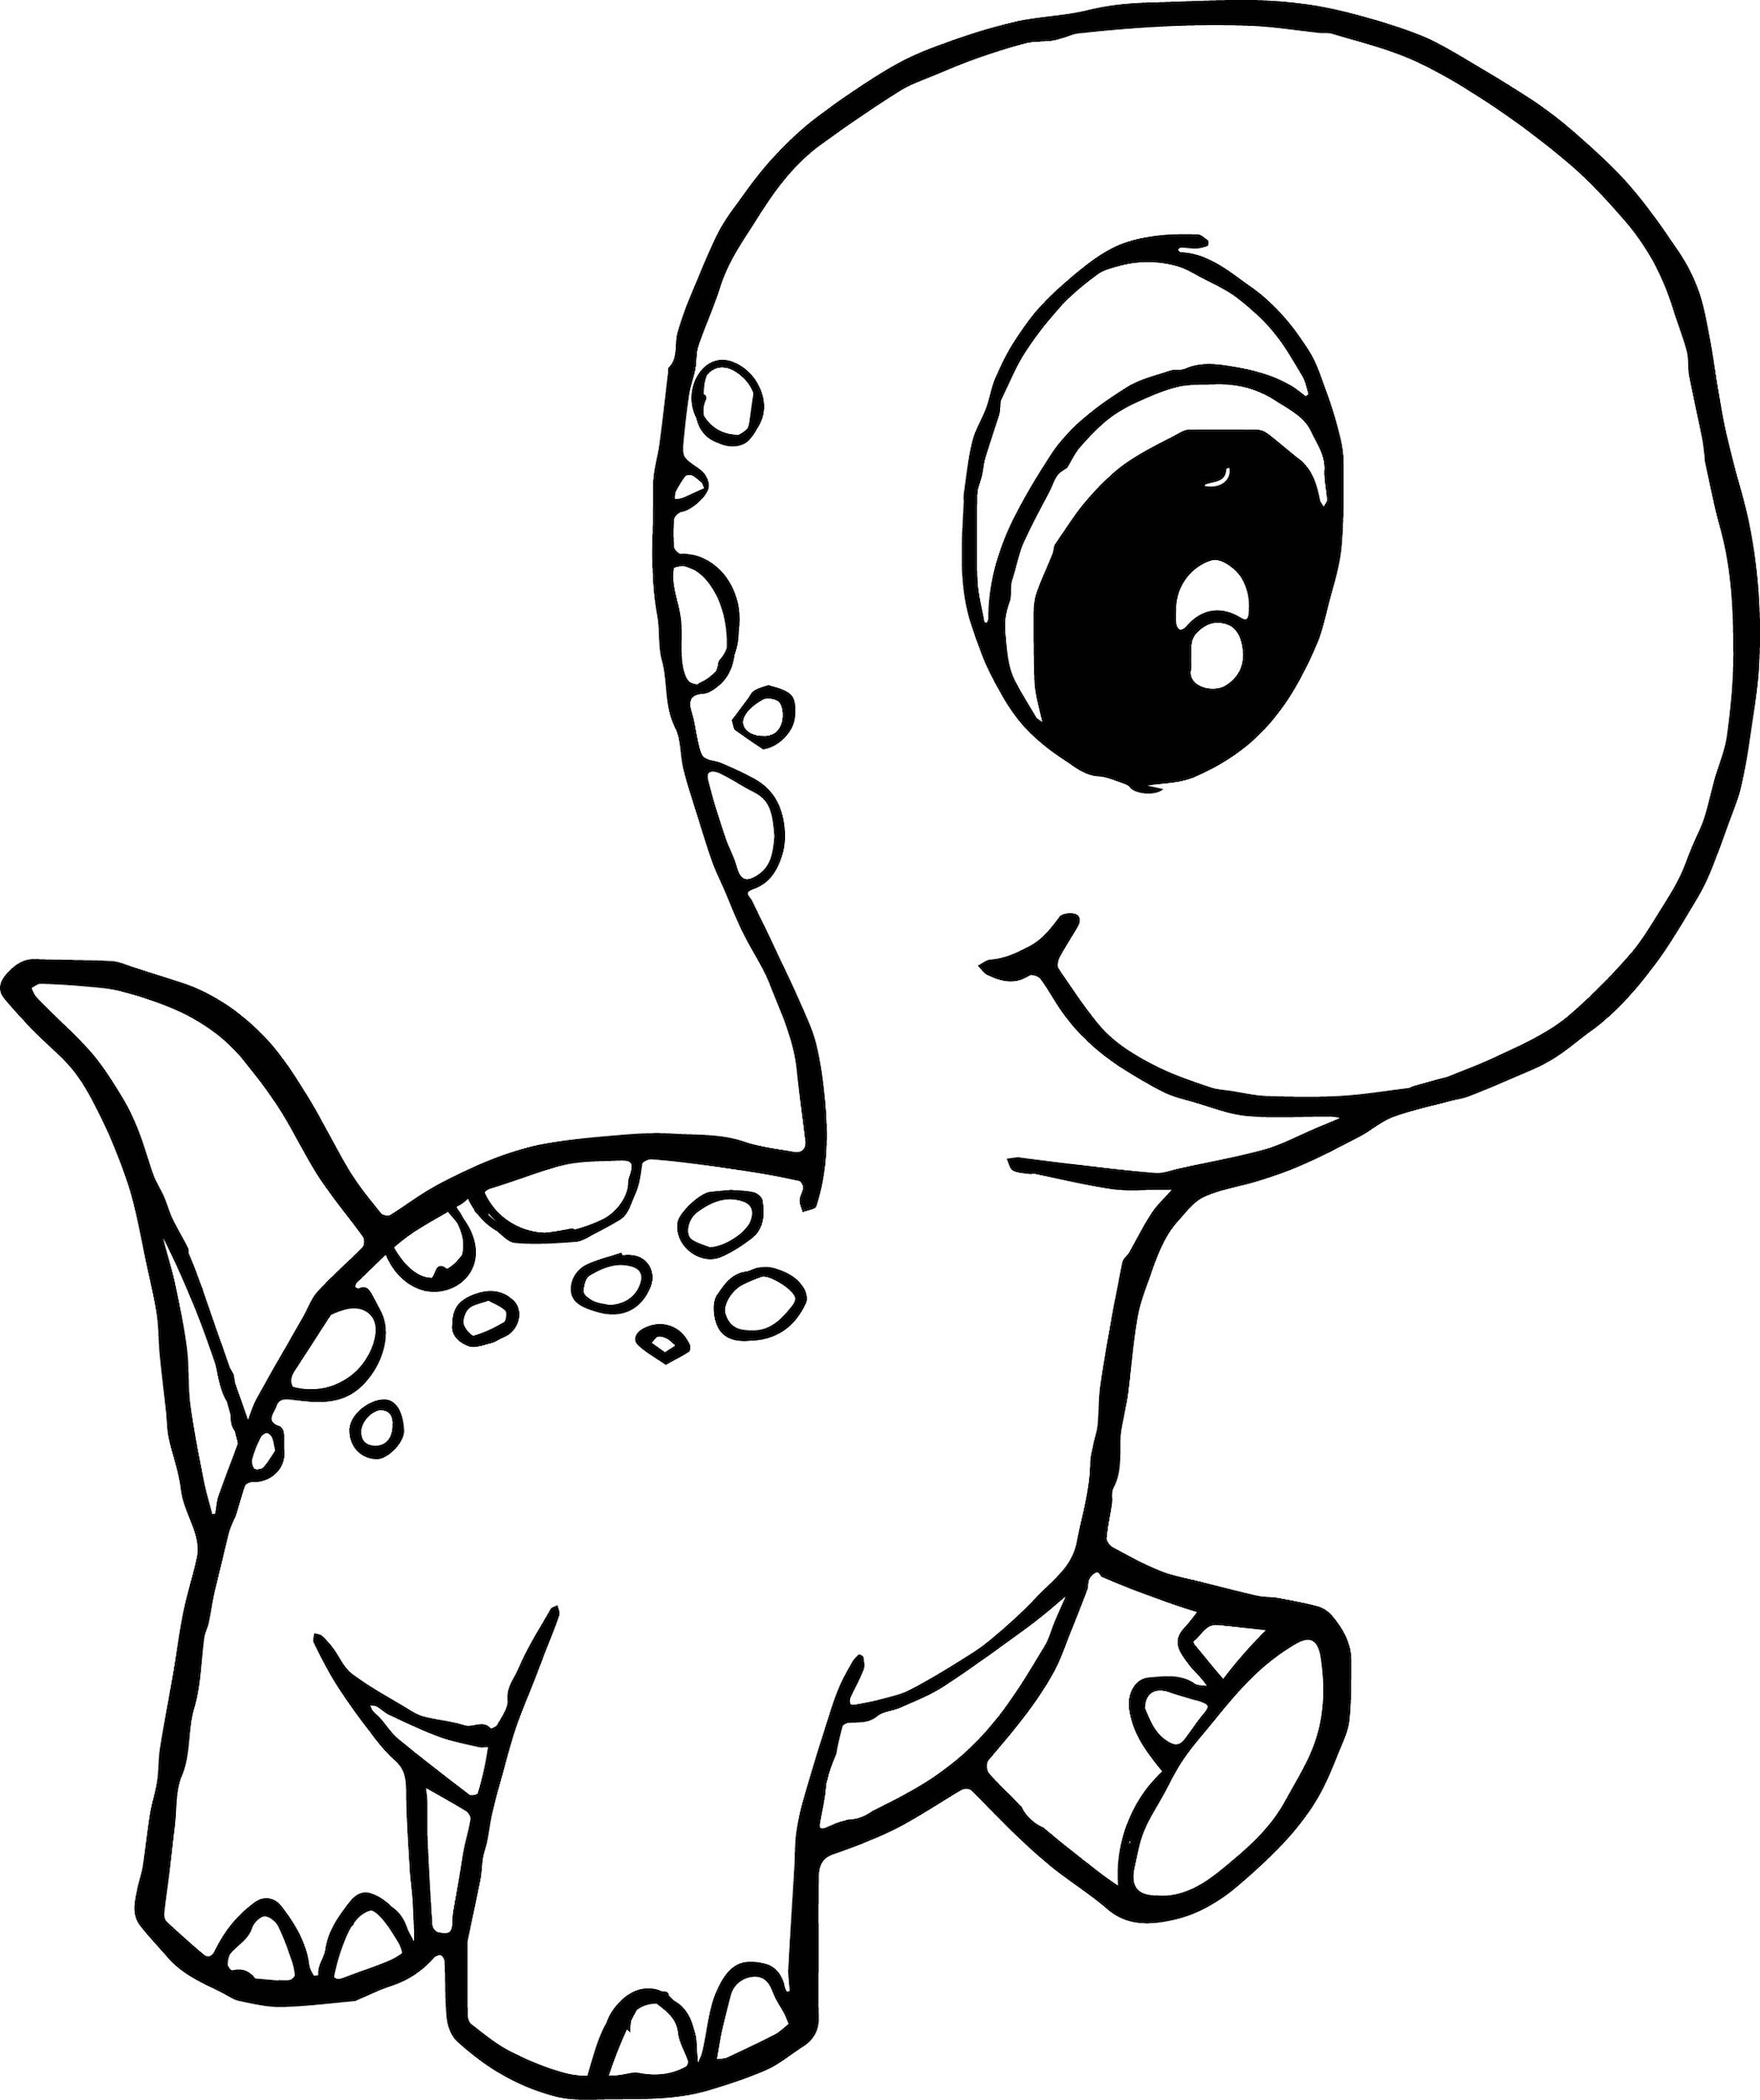 Dinosaur Coloring Pages And Other Free Printable Coloring ...